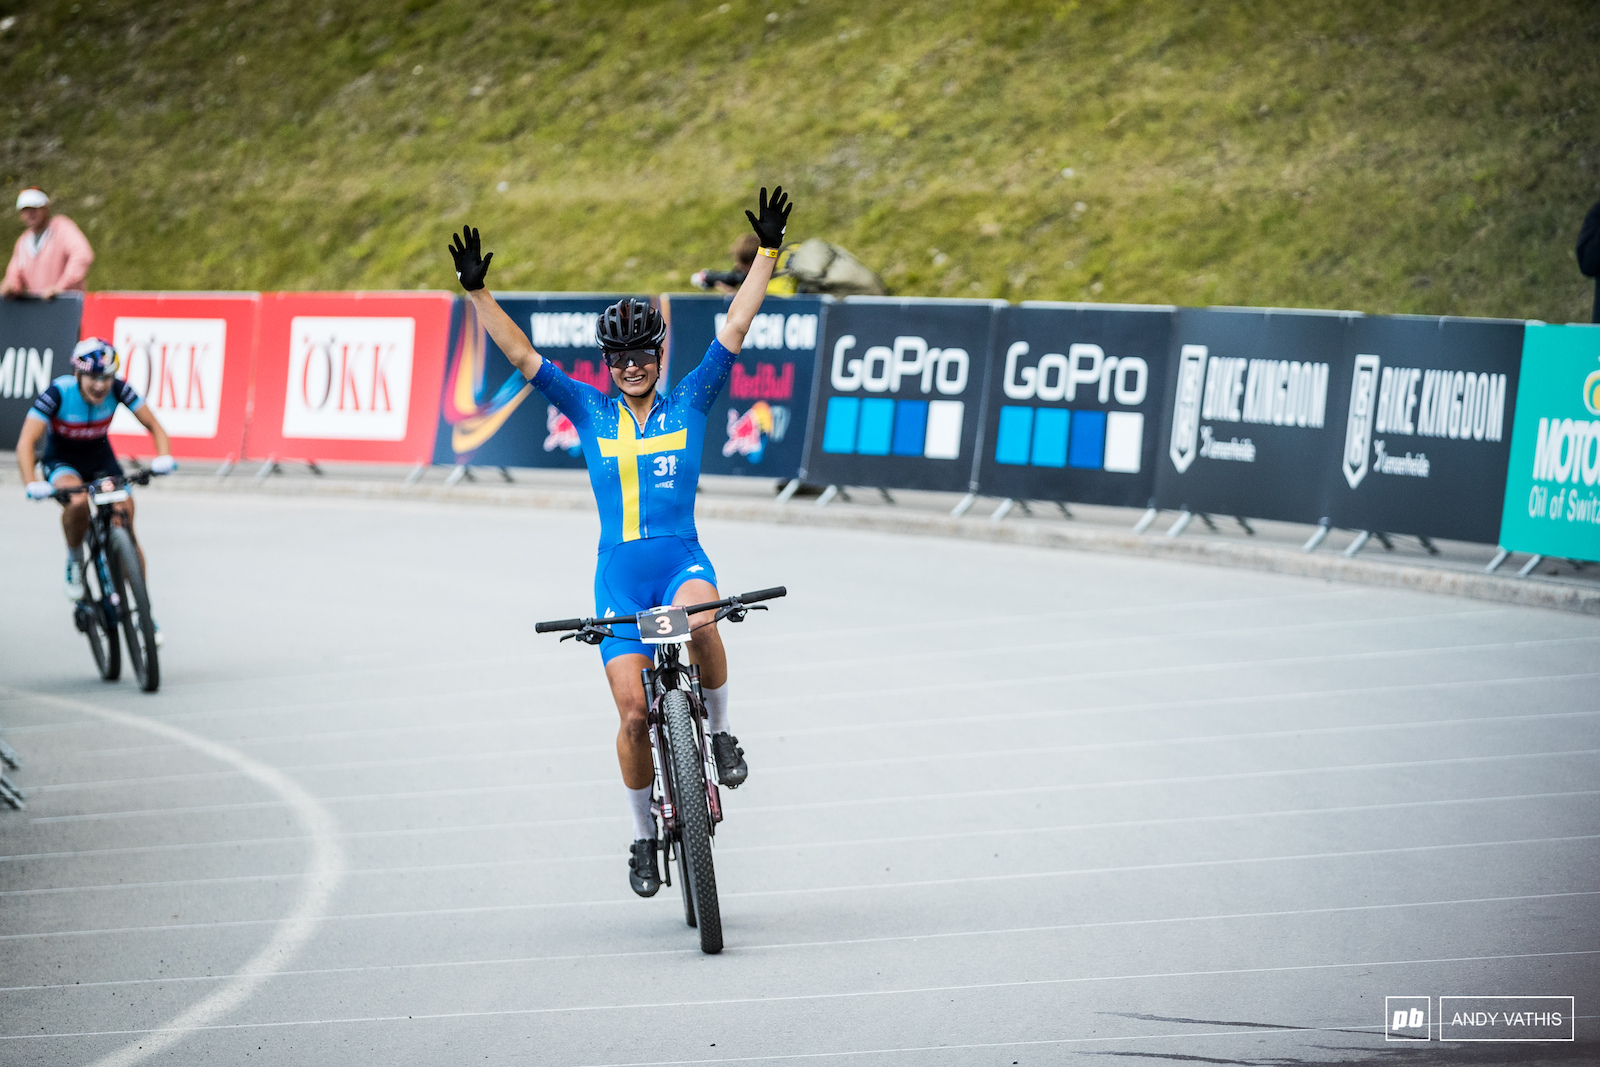 Jenny Rissveds takes the win.